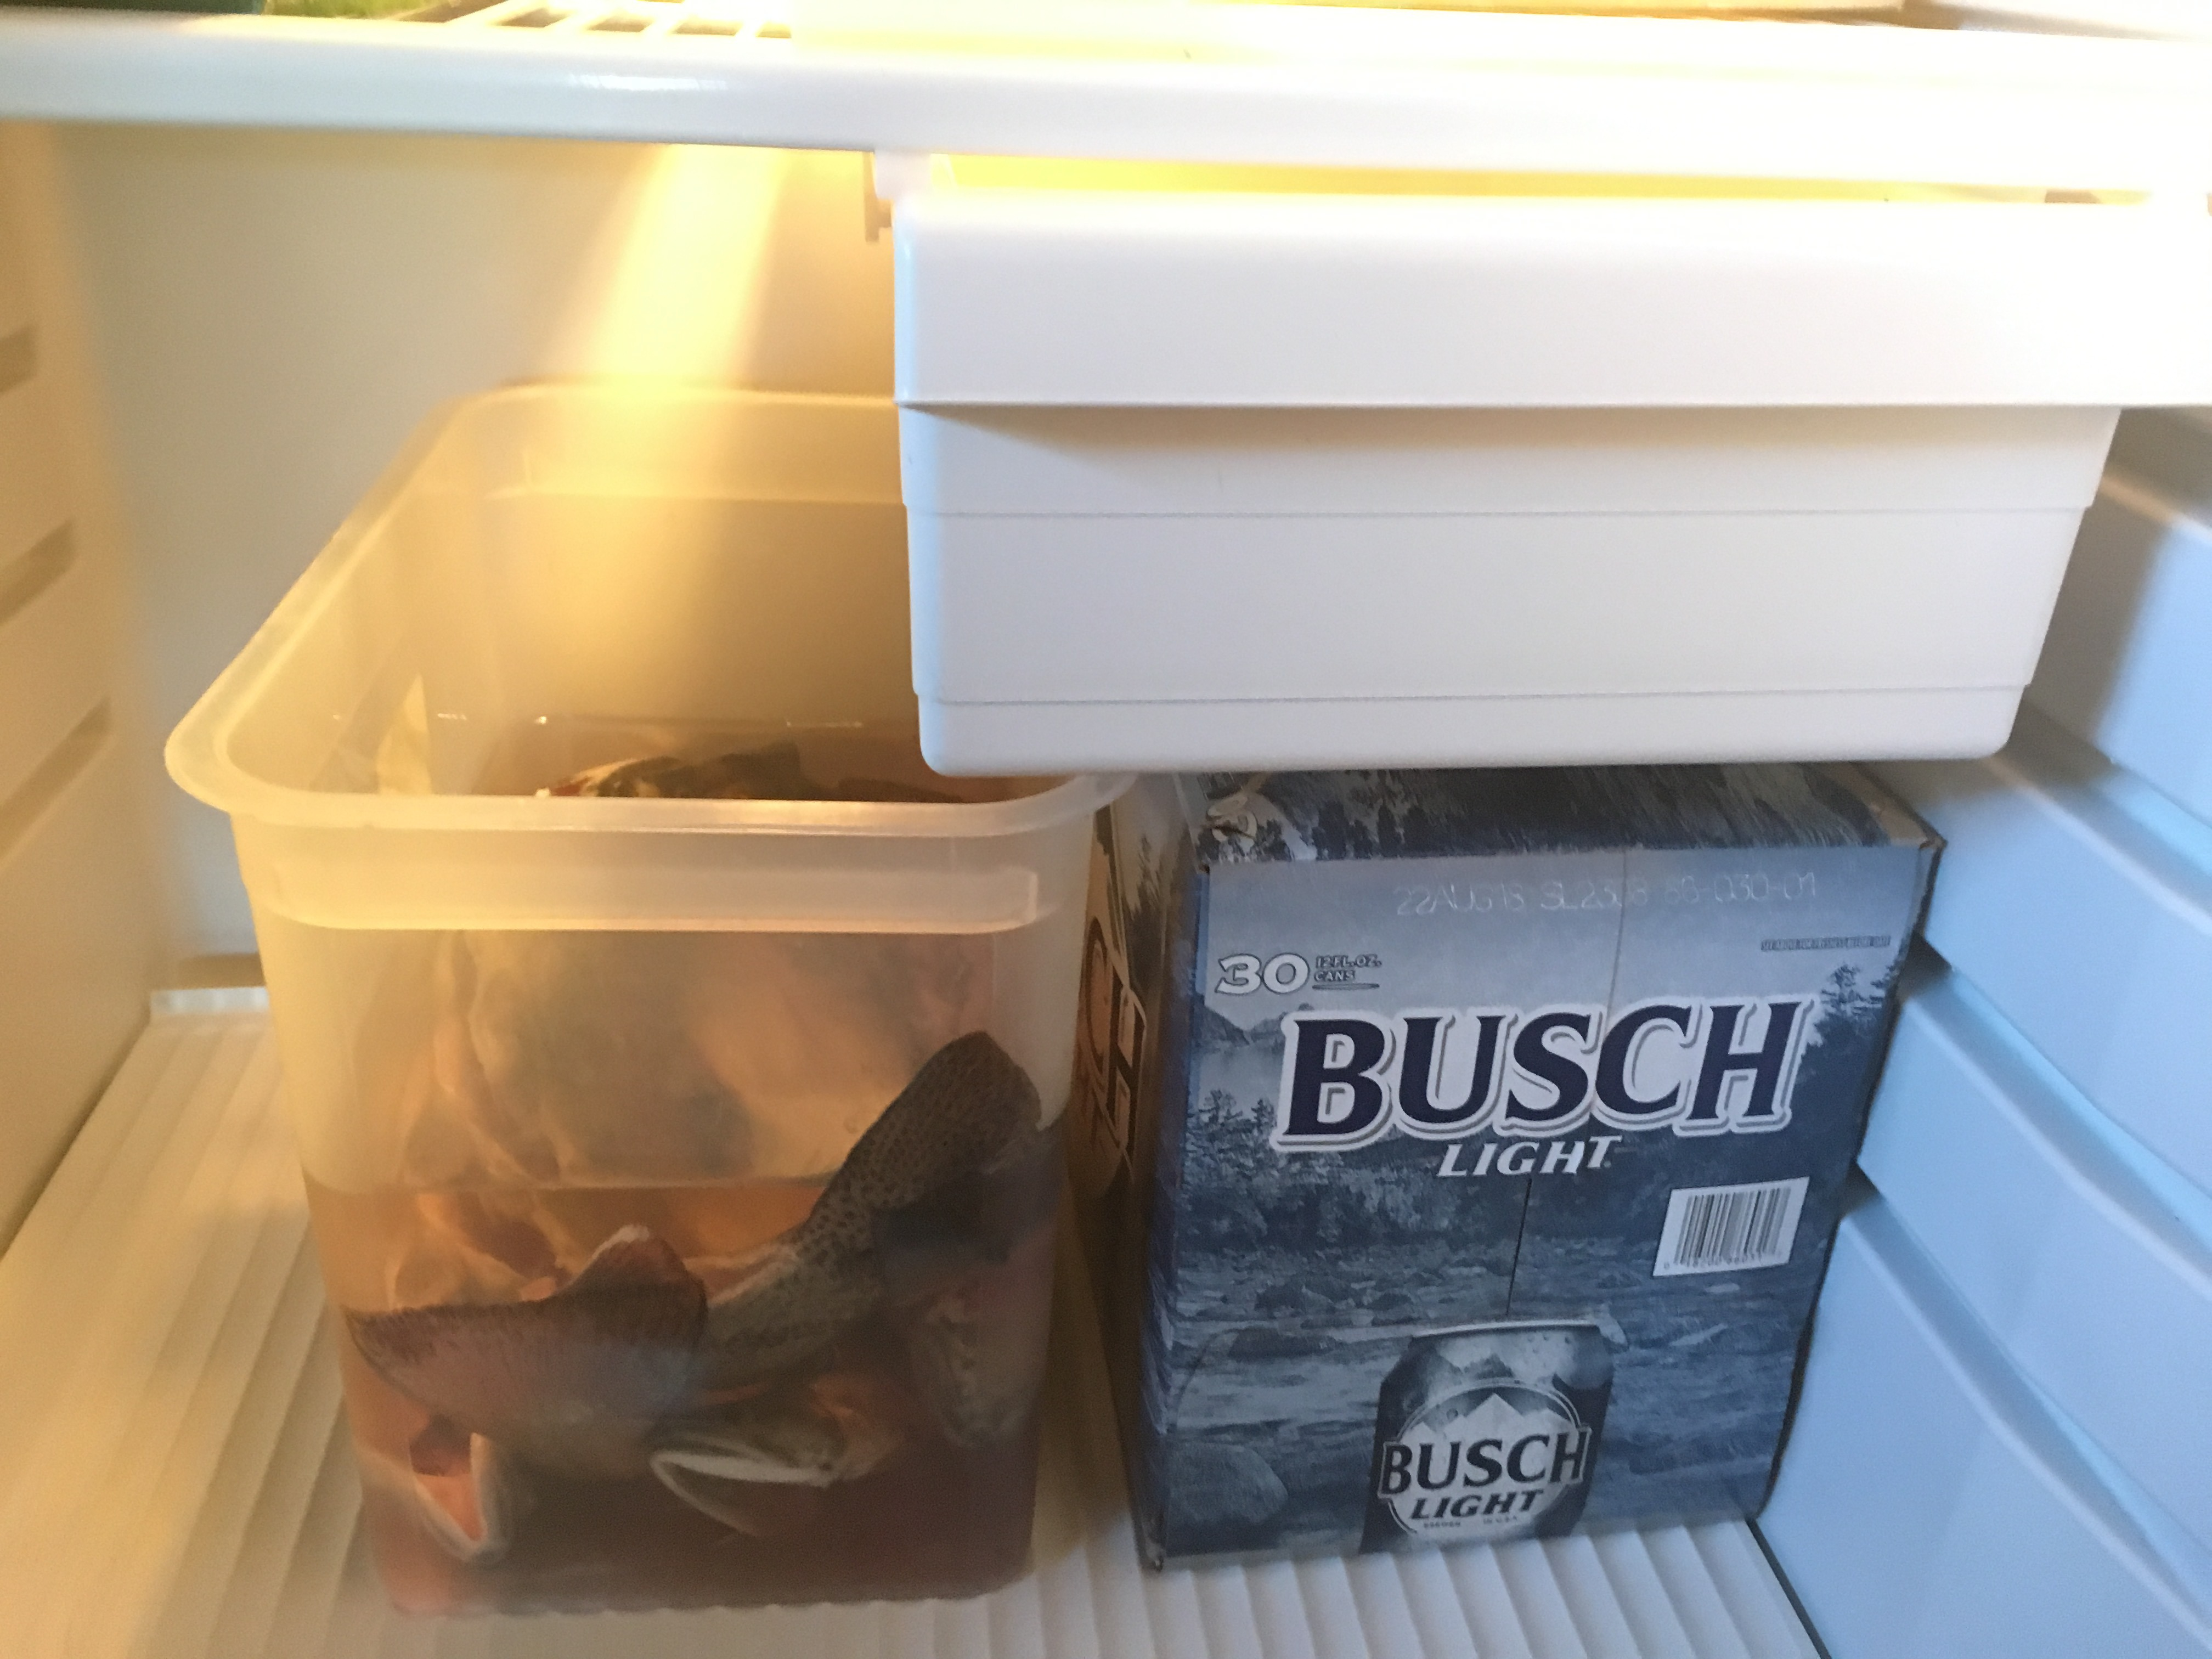 A case of Busch Light next to a tub of trout in a refrigerator